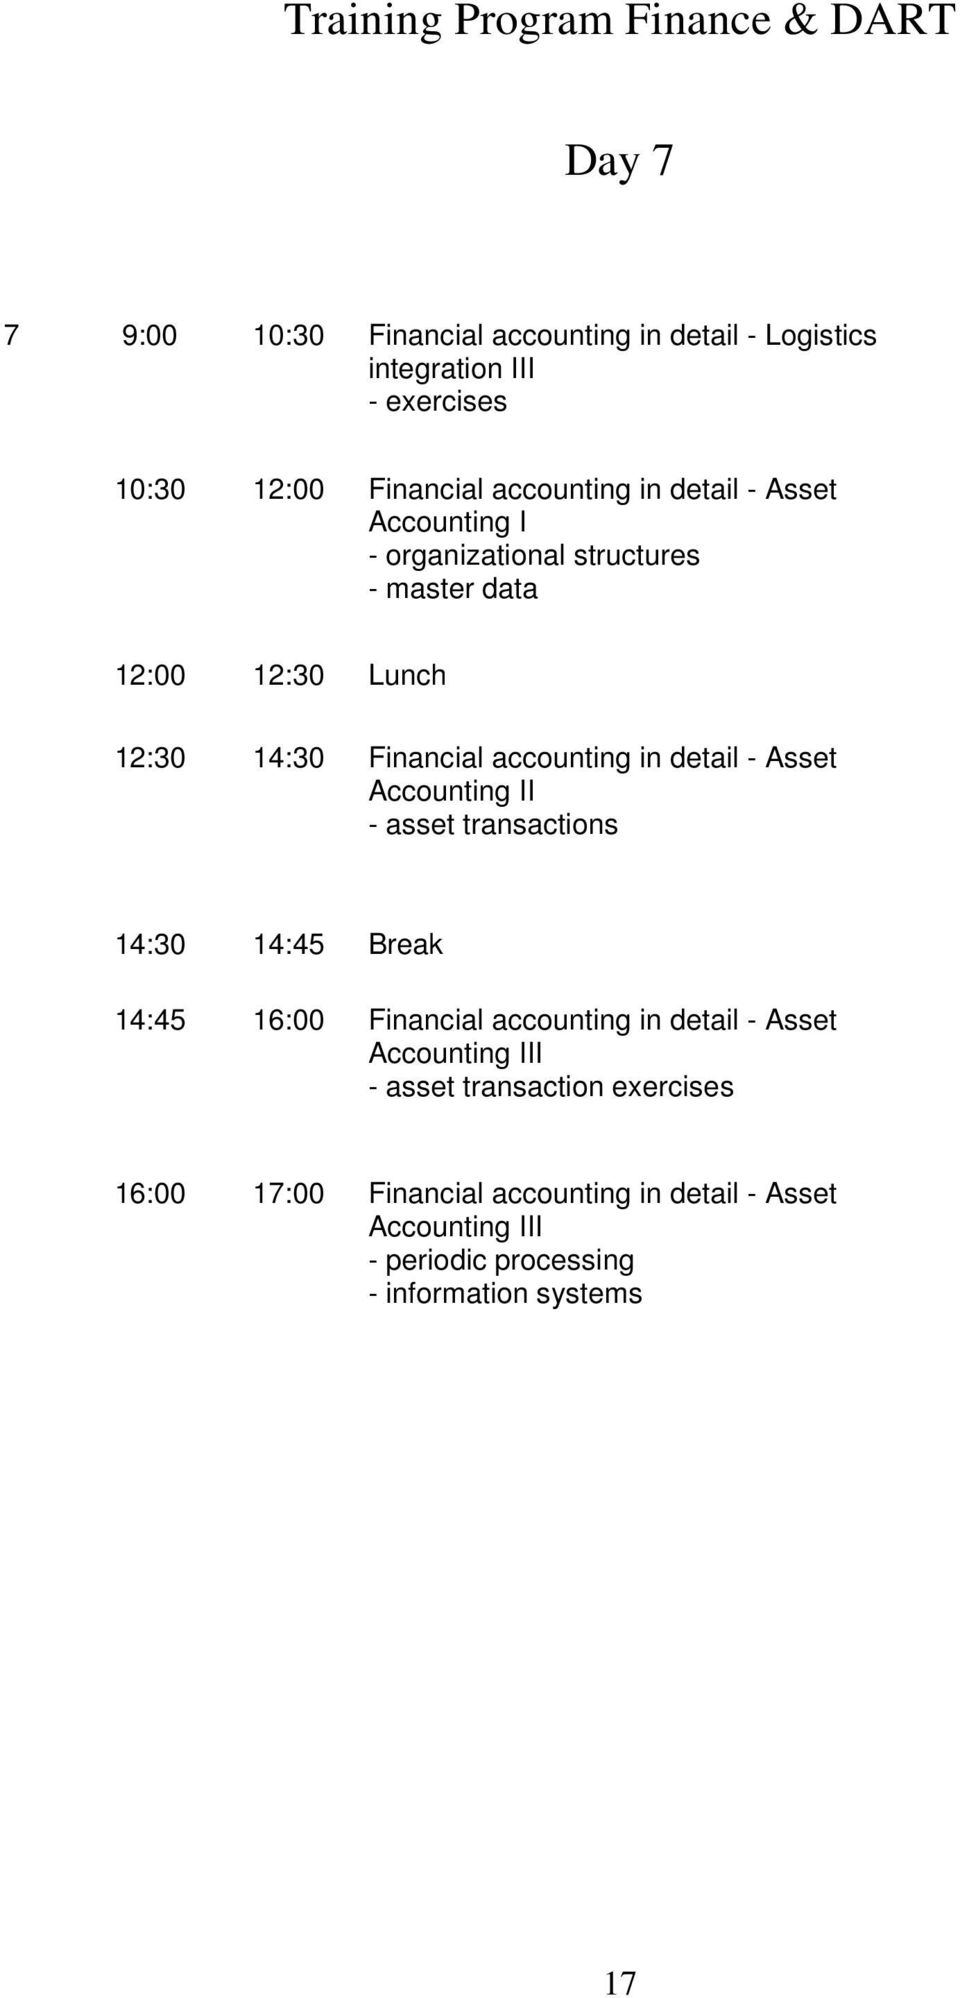 accounting in detail - Asset Accounting II - asset transactions 14:45 16:00 Financial accounting in detail - Asset Accounting III